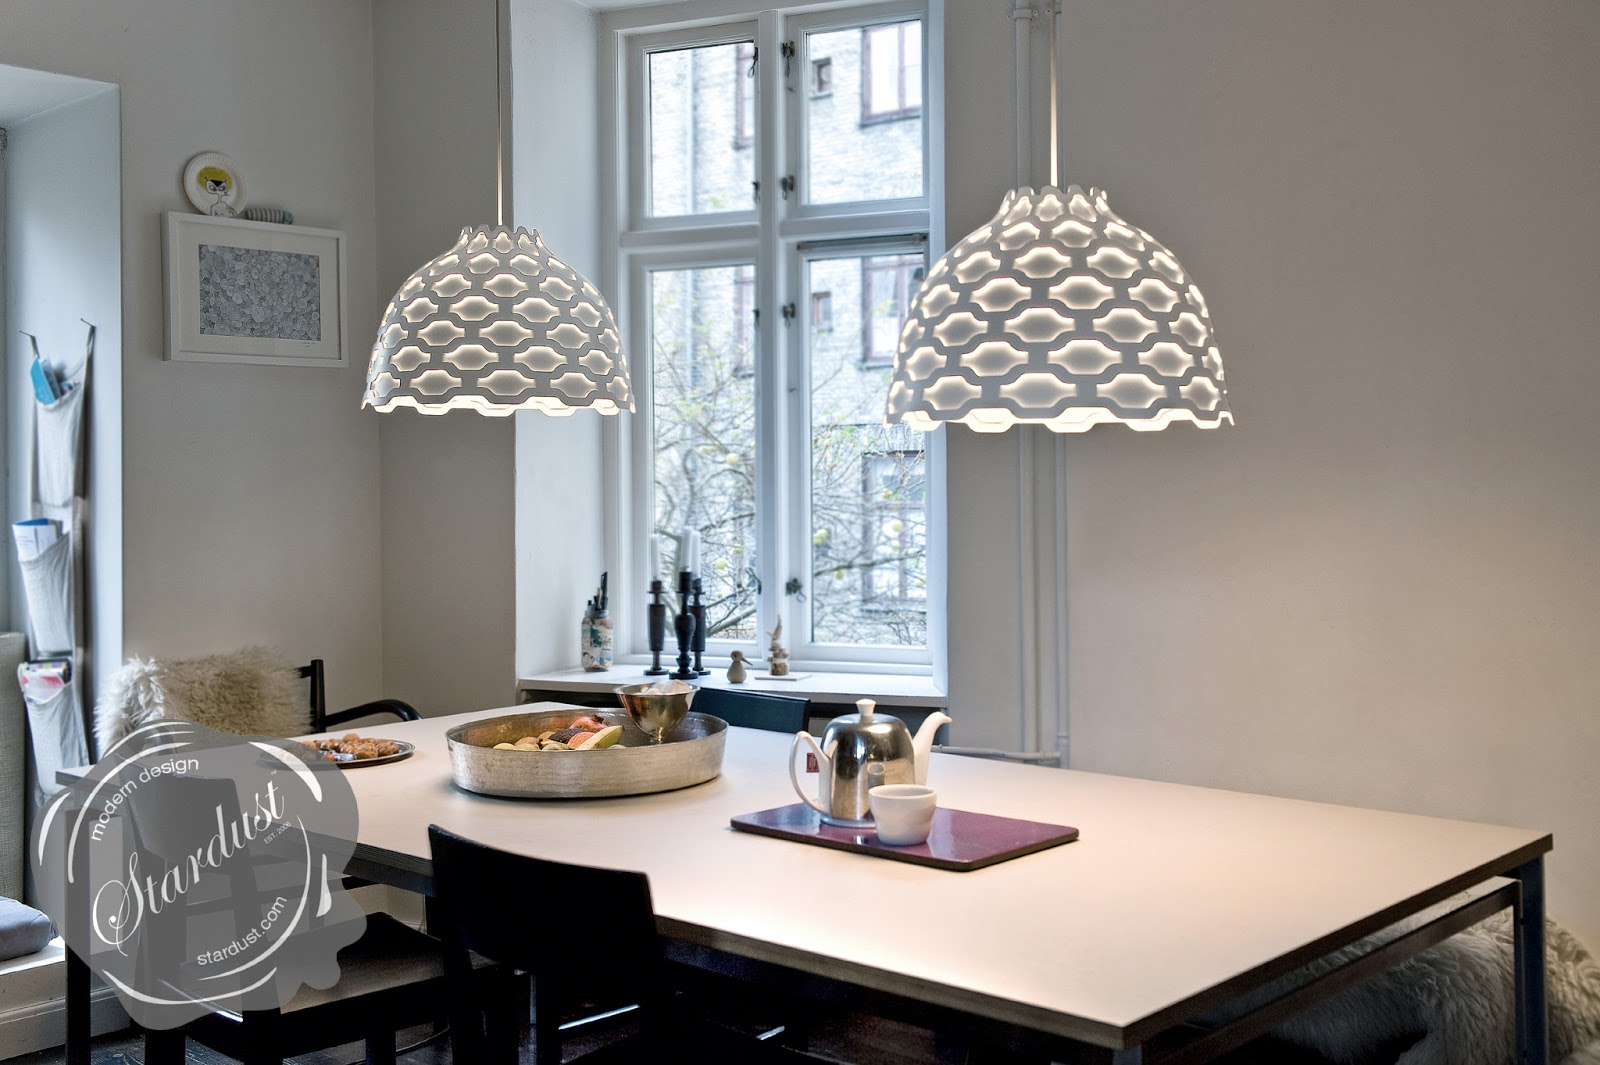 Lc shutters by louis poulsen for Dining table lighting ideas